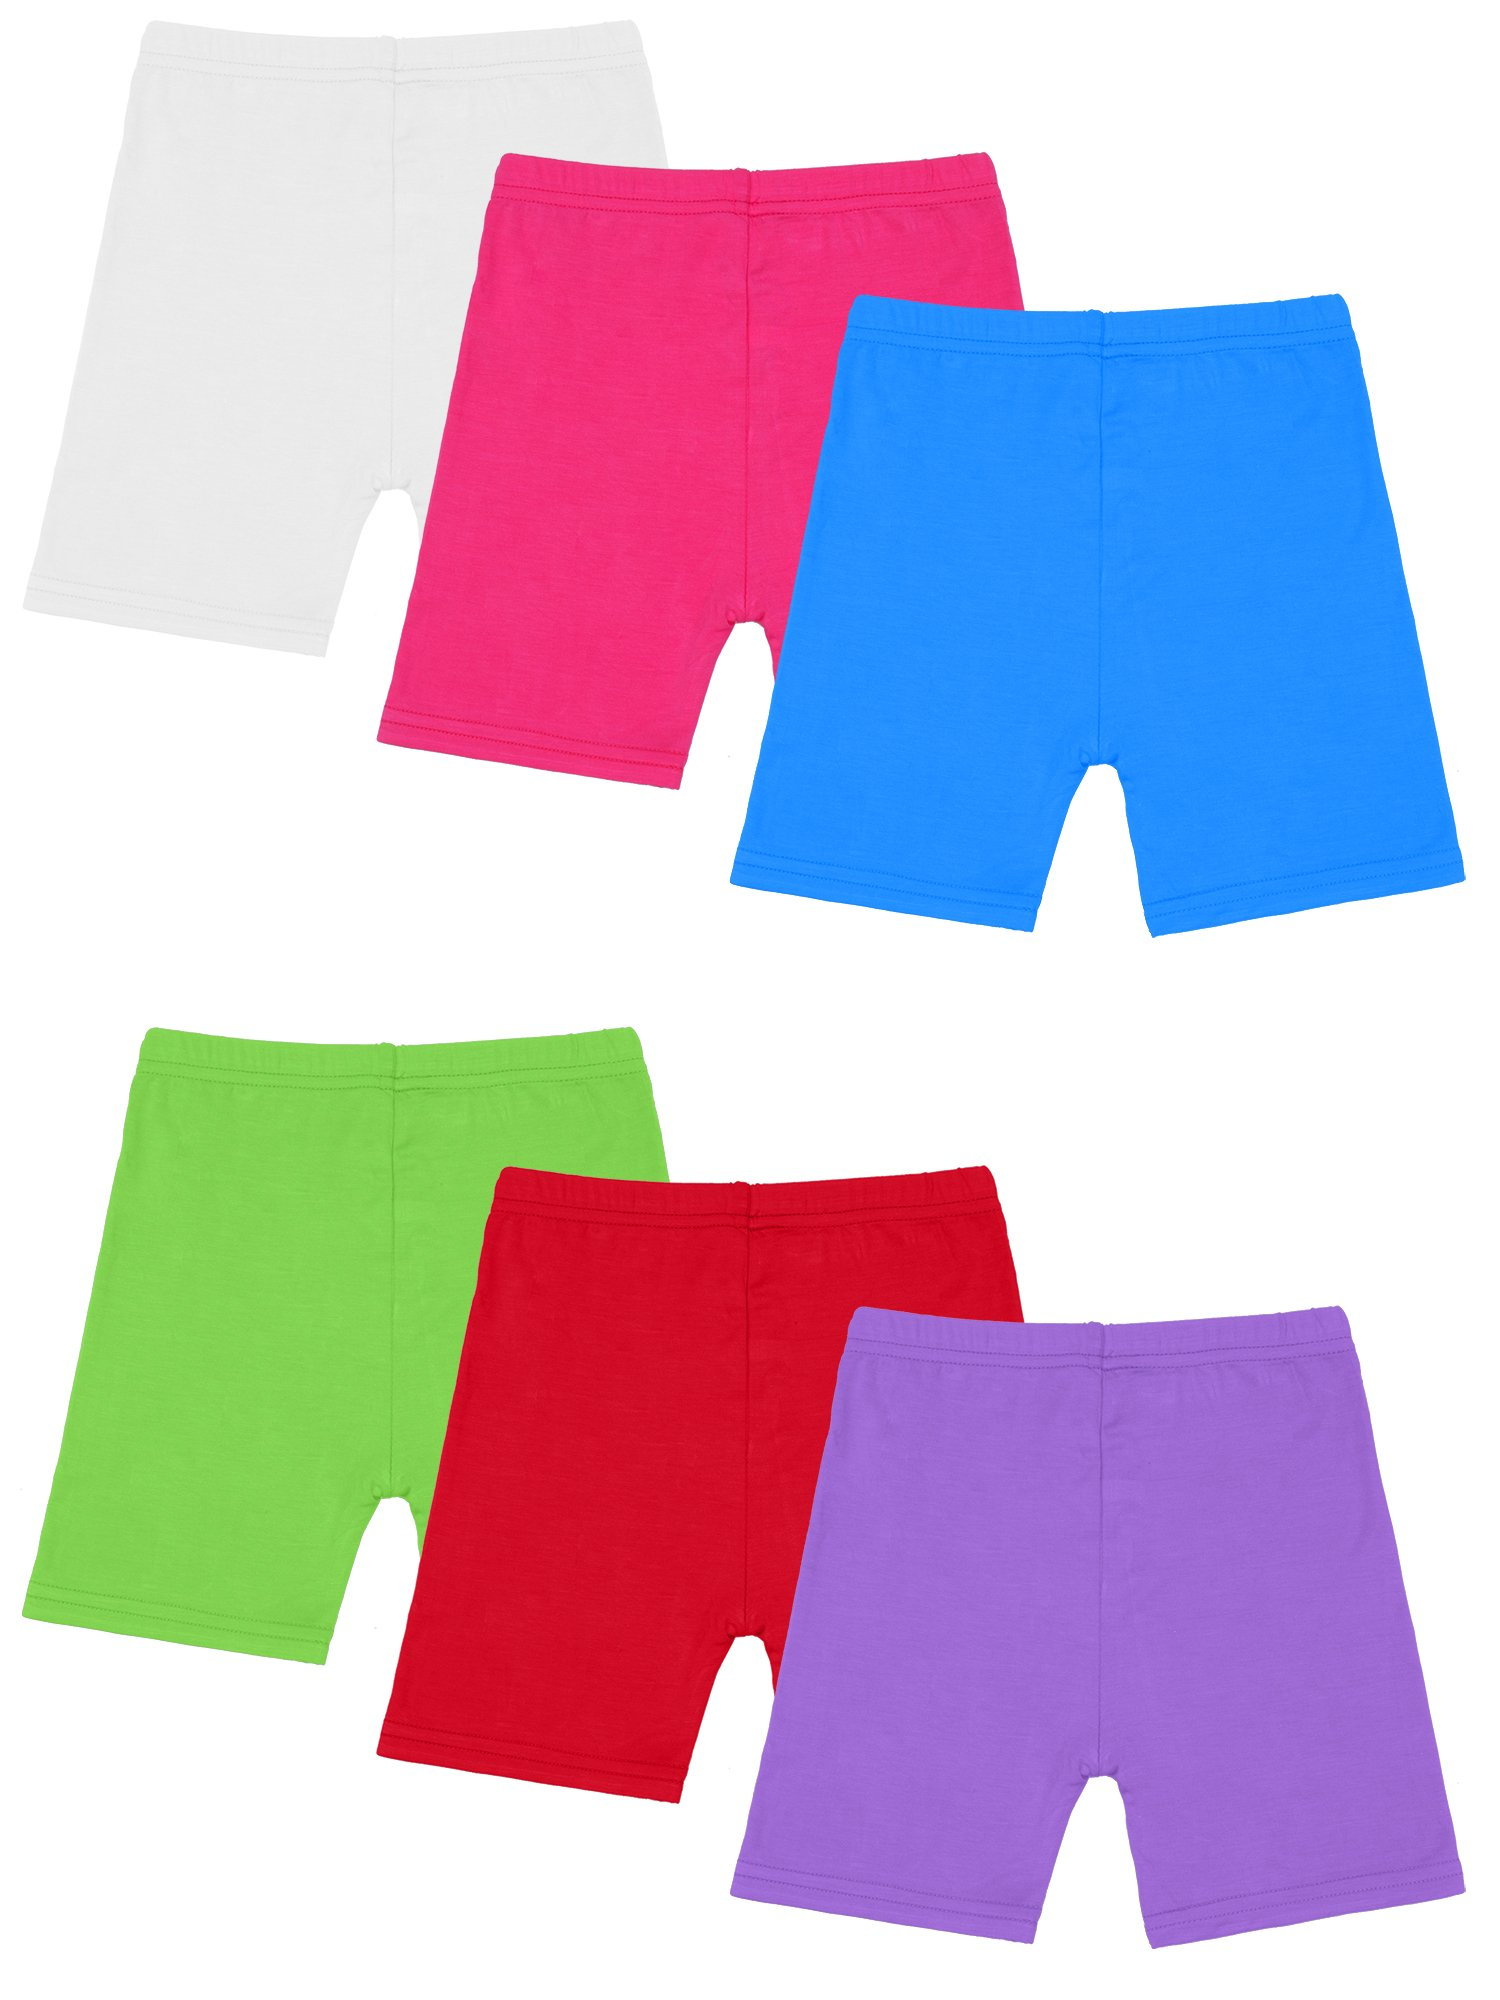 Resinta 6 Pack Black Dance Shorts Girls Bike Short Breathable and Safety 6 Color (4T/5T, Candy Colors)